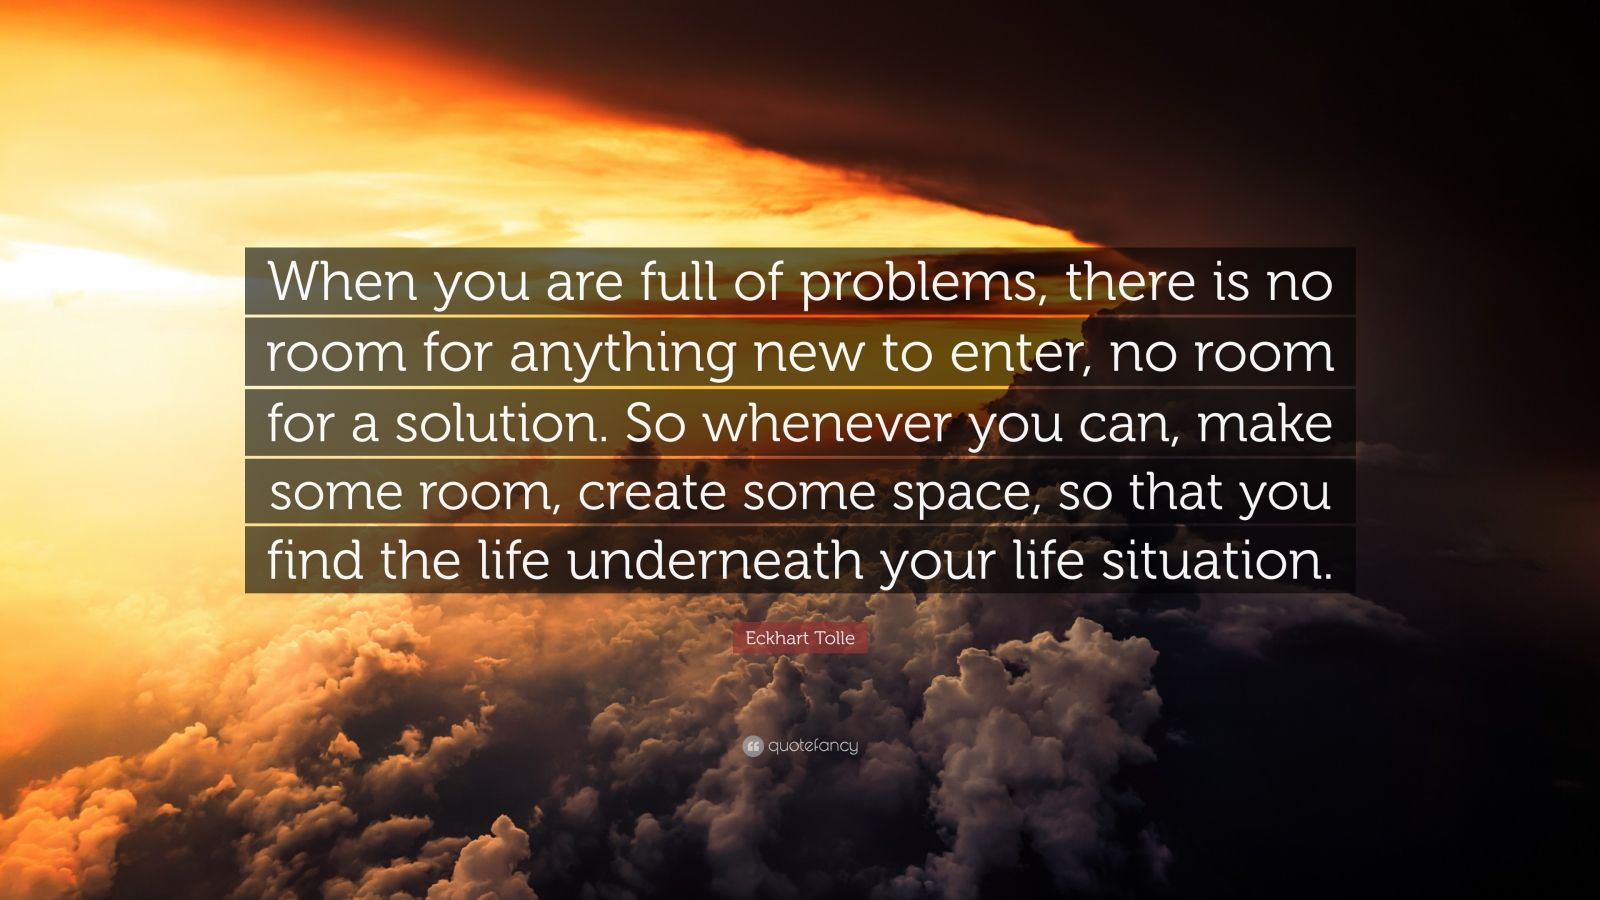 """Eckhart Tolle Quote: """"When you are full of problems, there is no room for anything new to enter, no room for a solution. So whenever you can, make some room, create some space, so that you find the life underneath your life situation."""""""